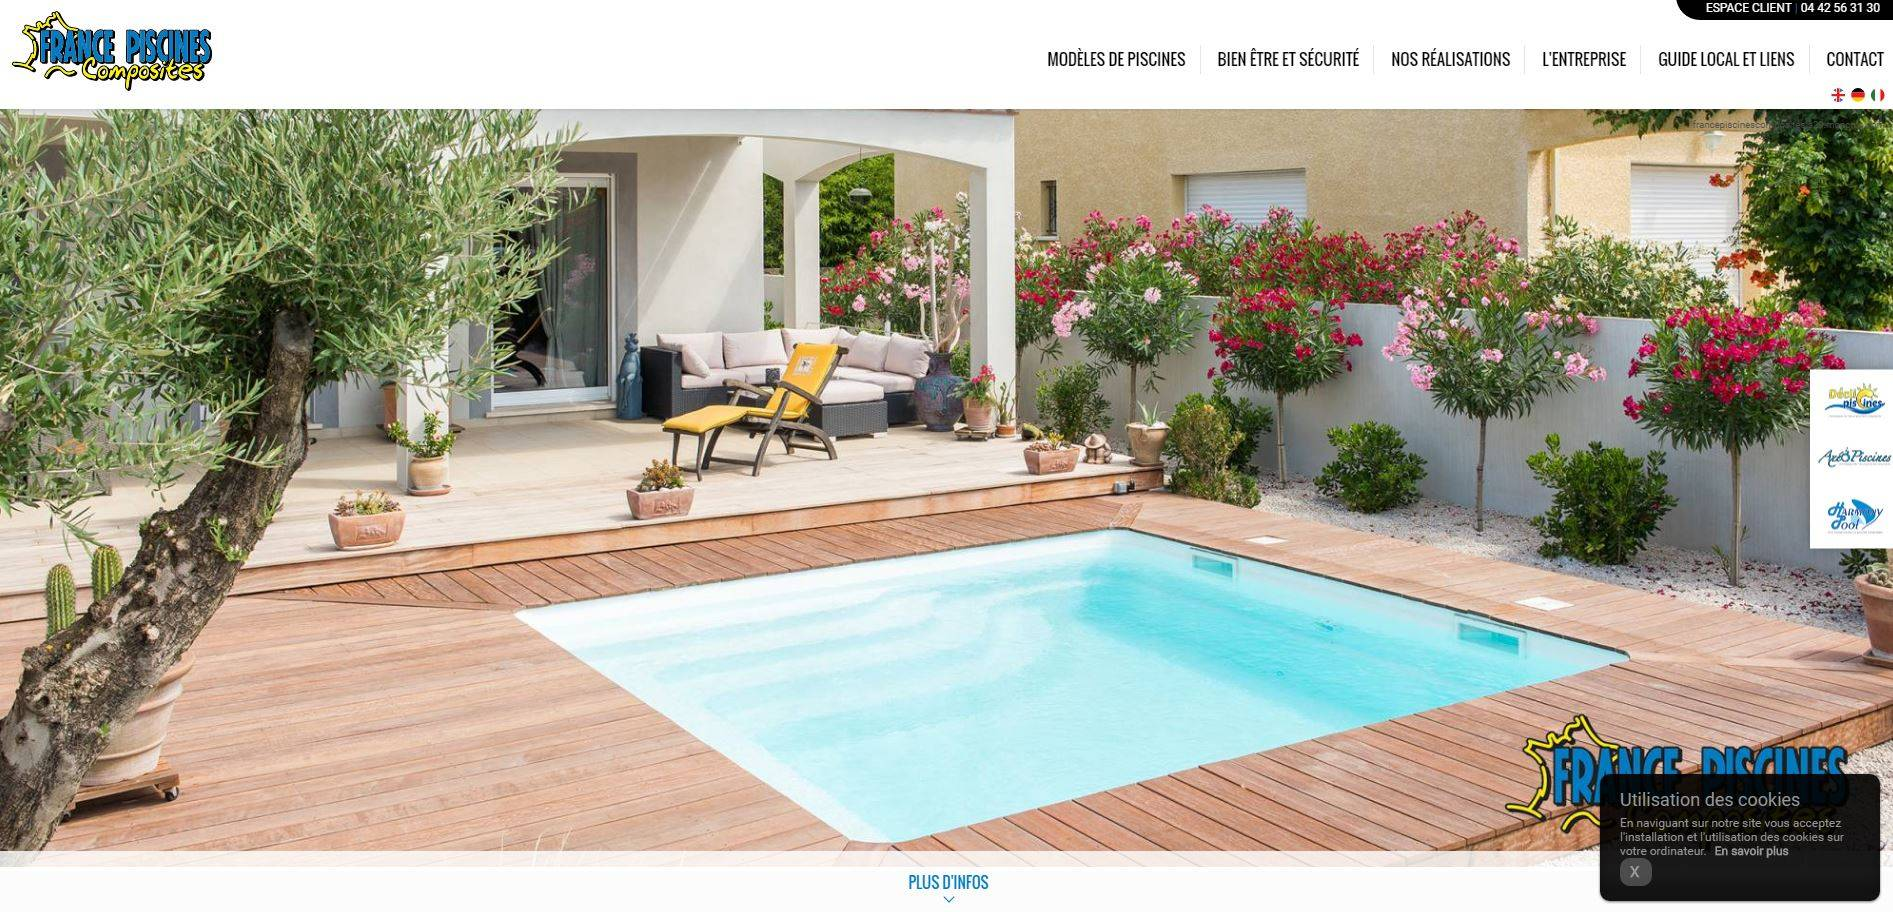 France piscine composite fabricant de piscine coque istres for Piscine fabricant